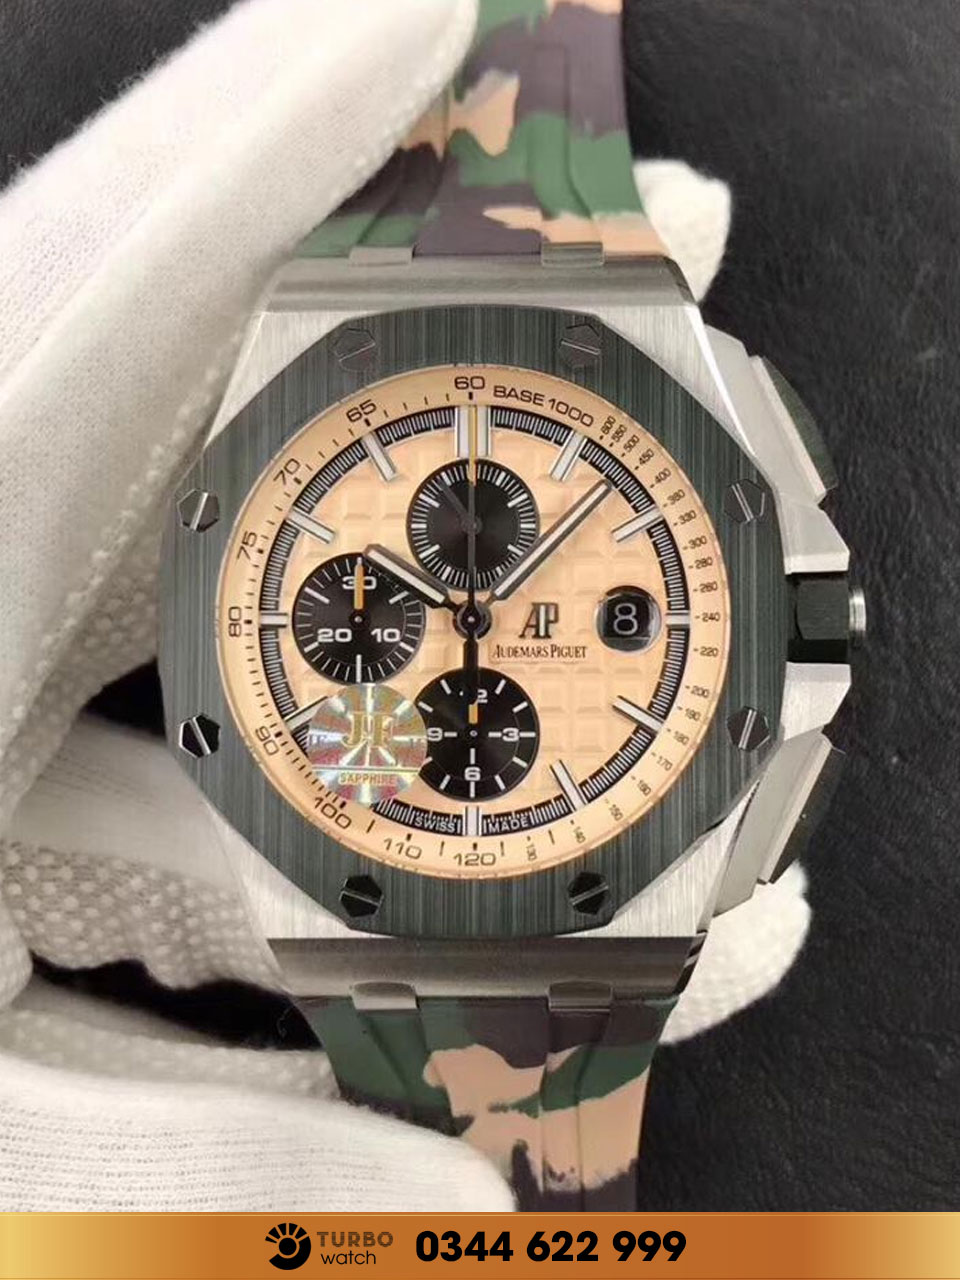 Audemas piguet Royal Oak Offshore Chronograph Camouflage Unworn replica 1-1 cao cấp